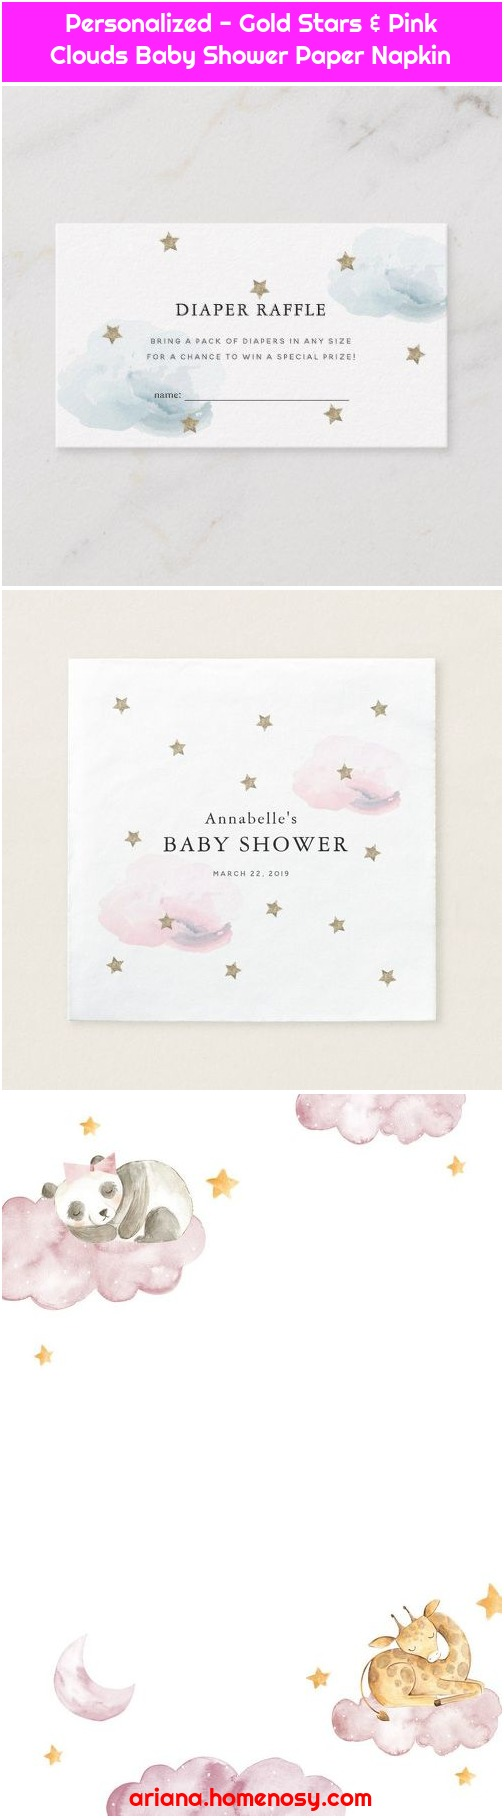 Personalized - Gold Stars & Pink Clouds Baby Shower Paper Napkin